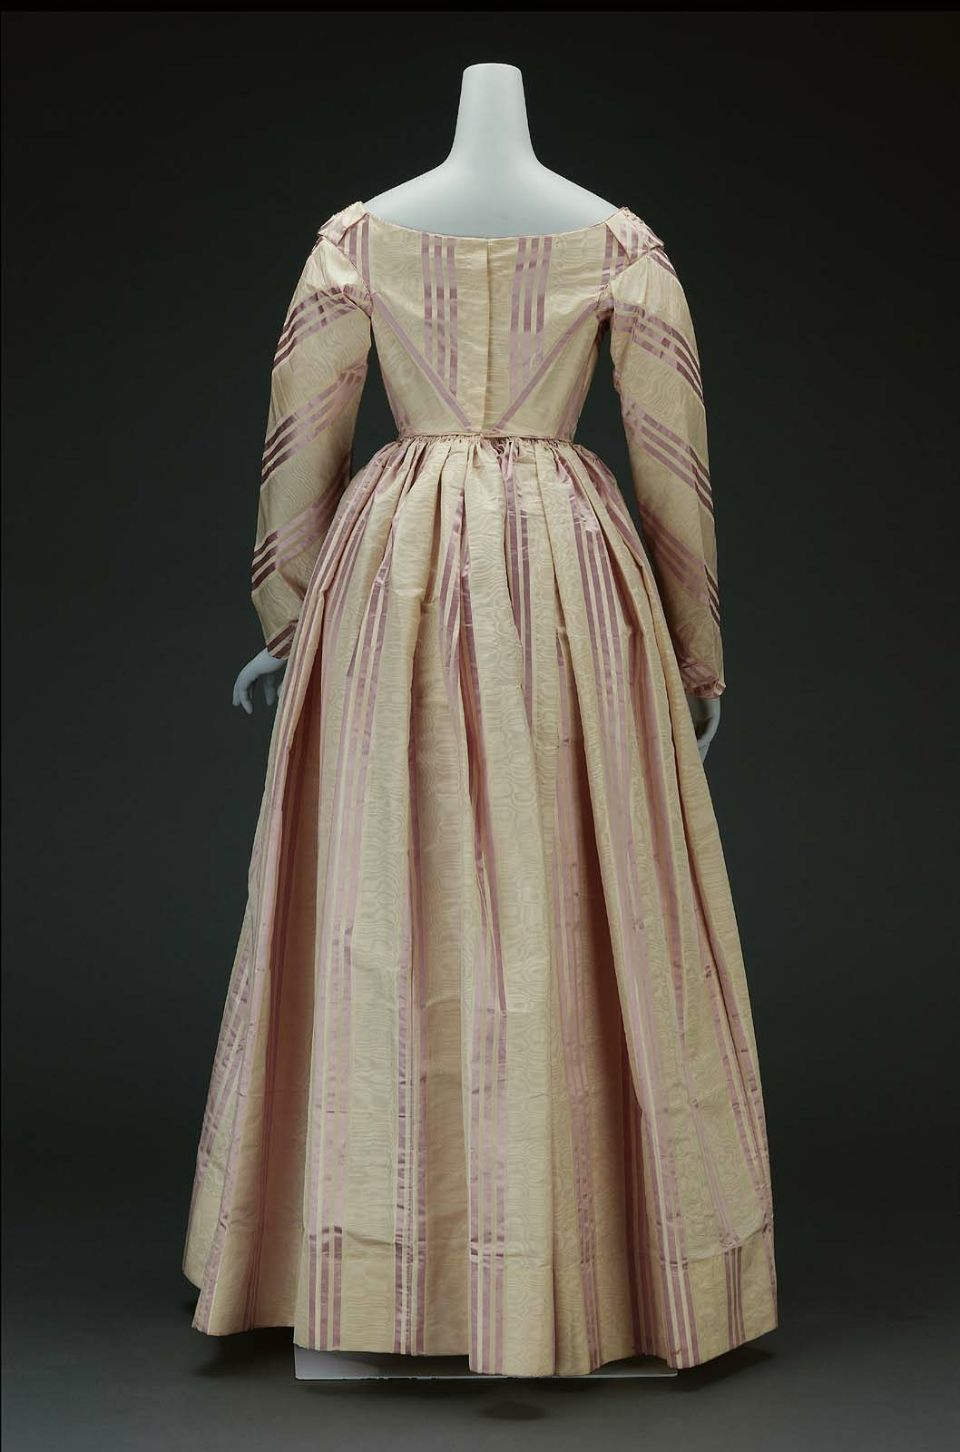 dress of white silk moire american mid19th century